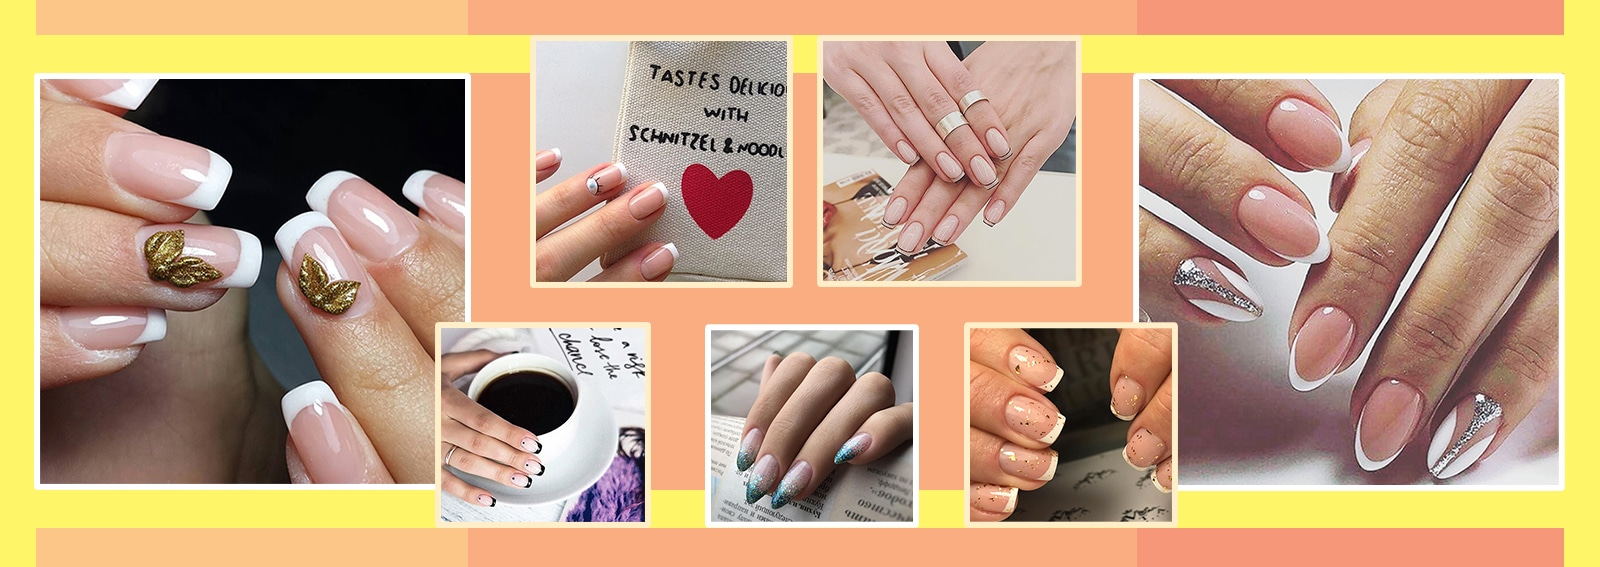 french manicure collage_desktop